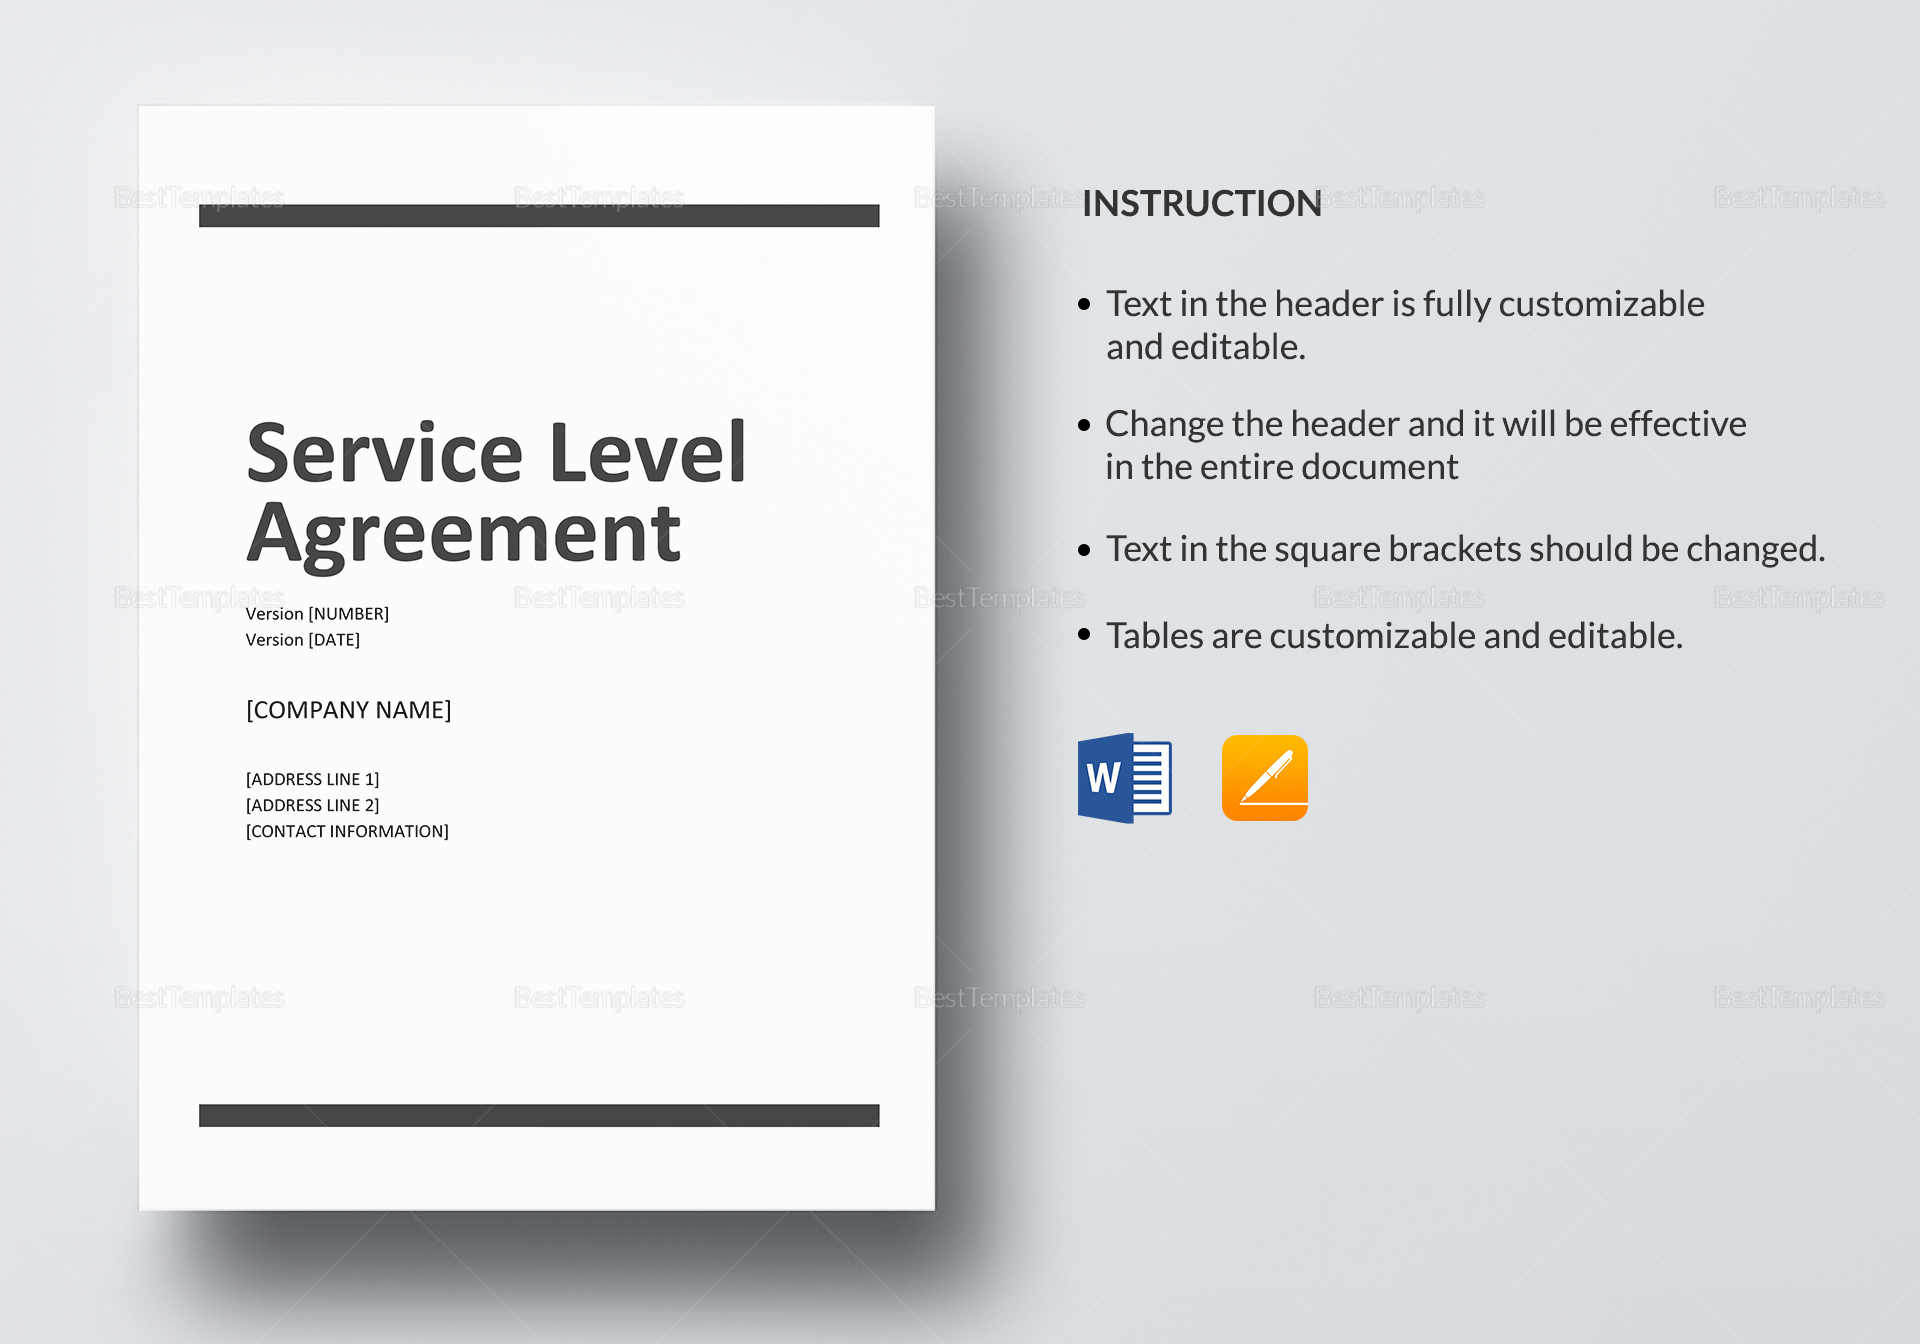 Shared Services Service Level Agreement Template